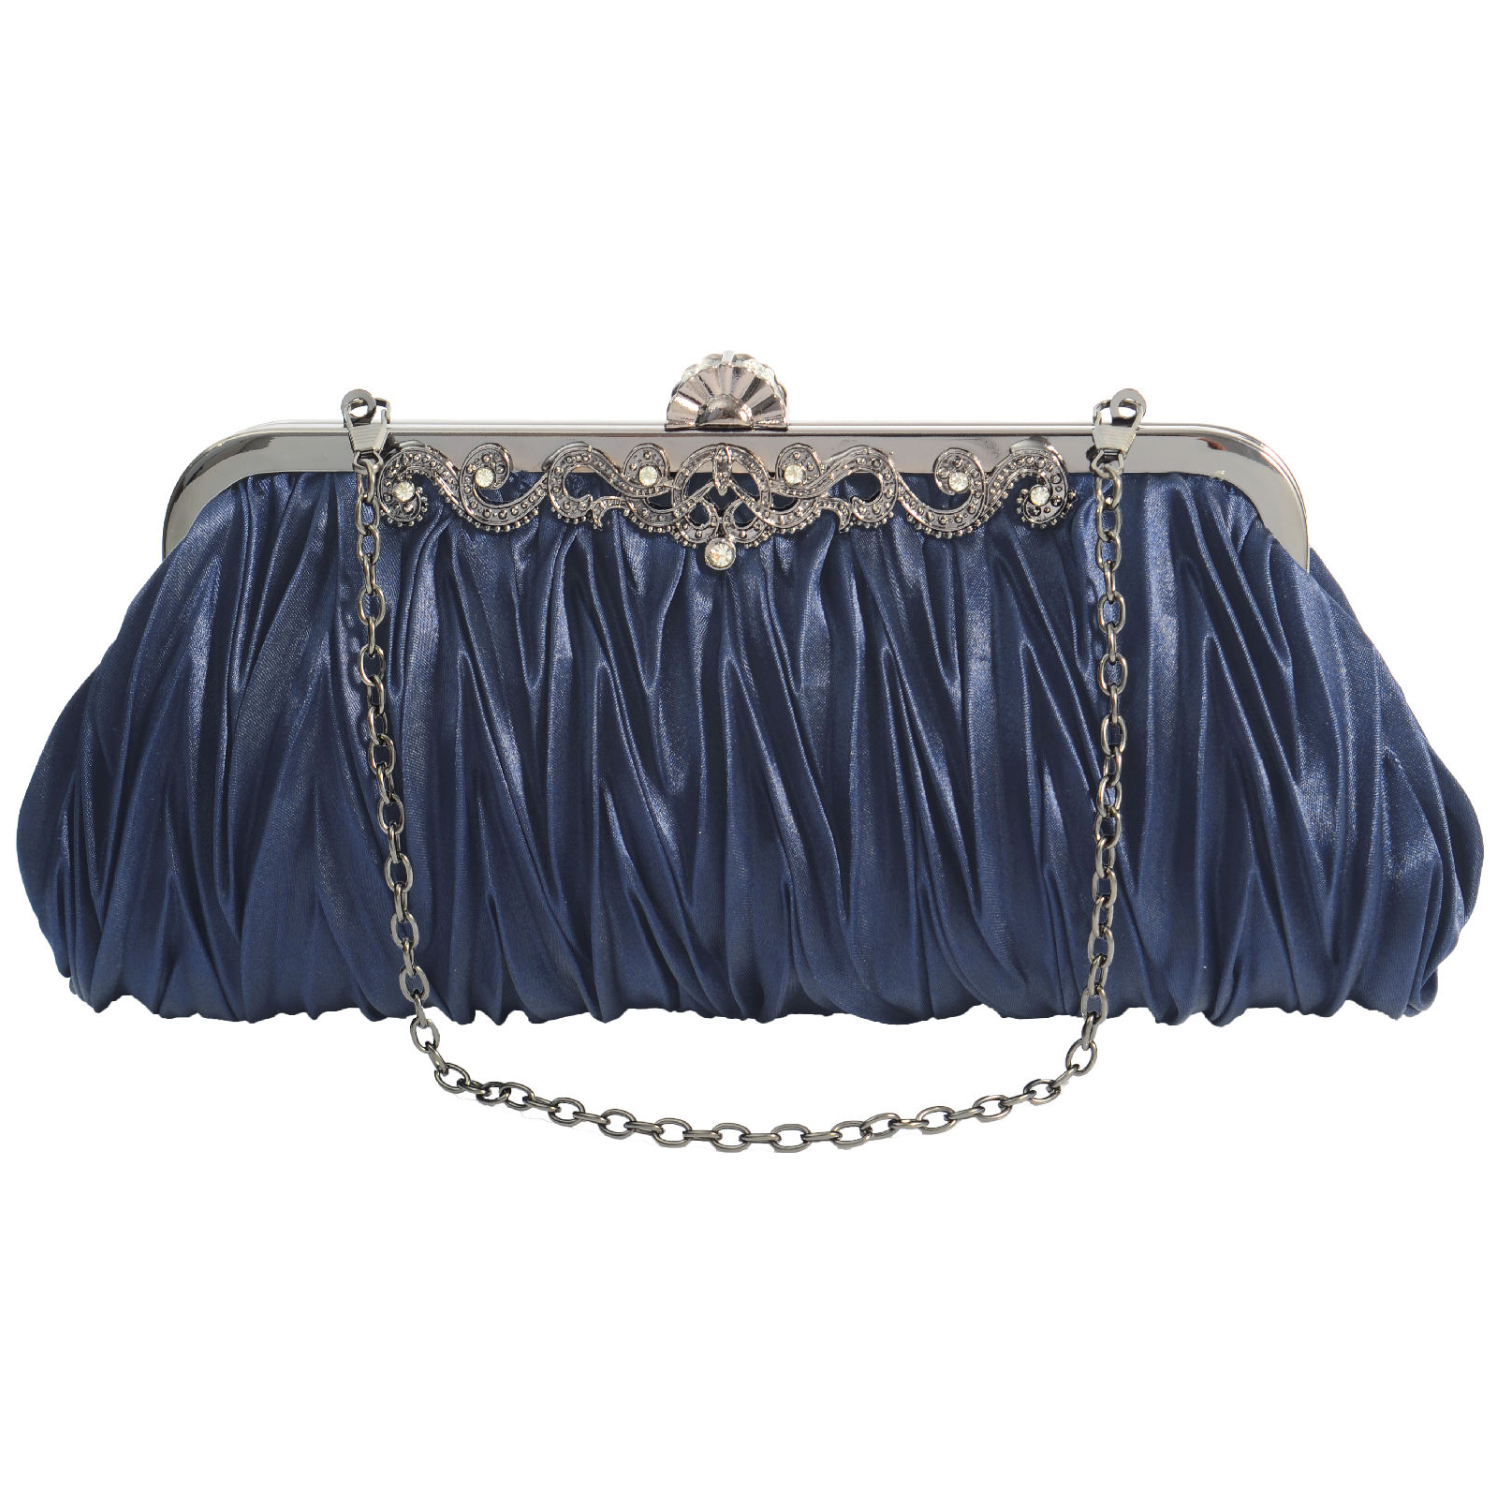 PULAMA Elegant Envelope Clutch Satin Purse Wallet with Vintage Decoration Dark Navy